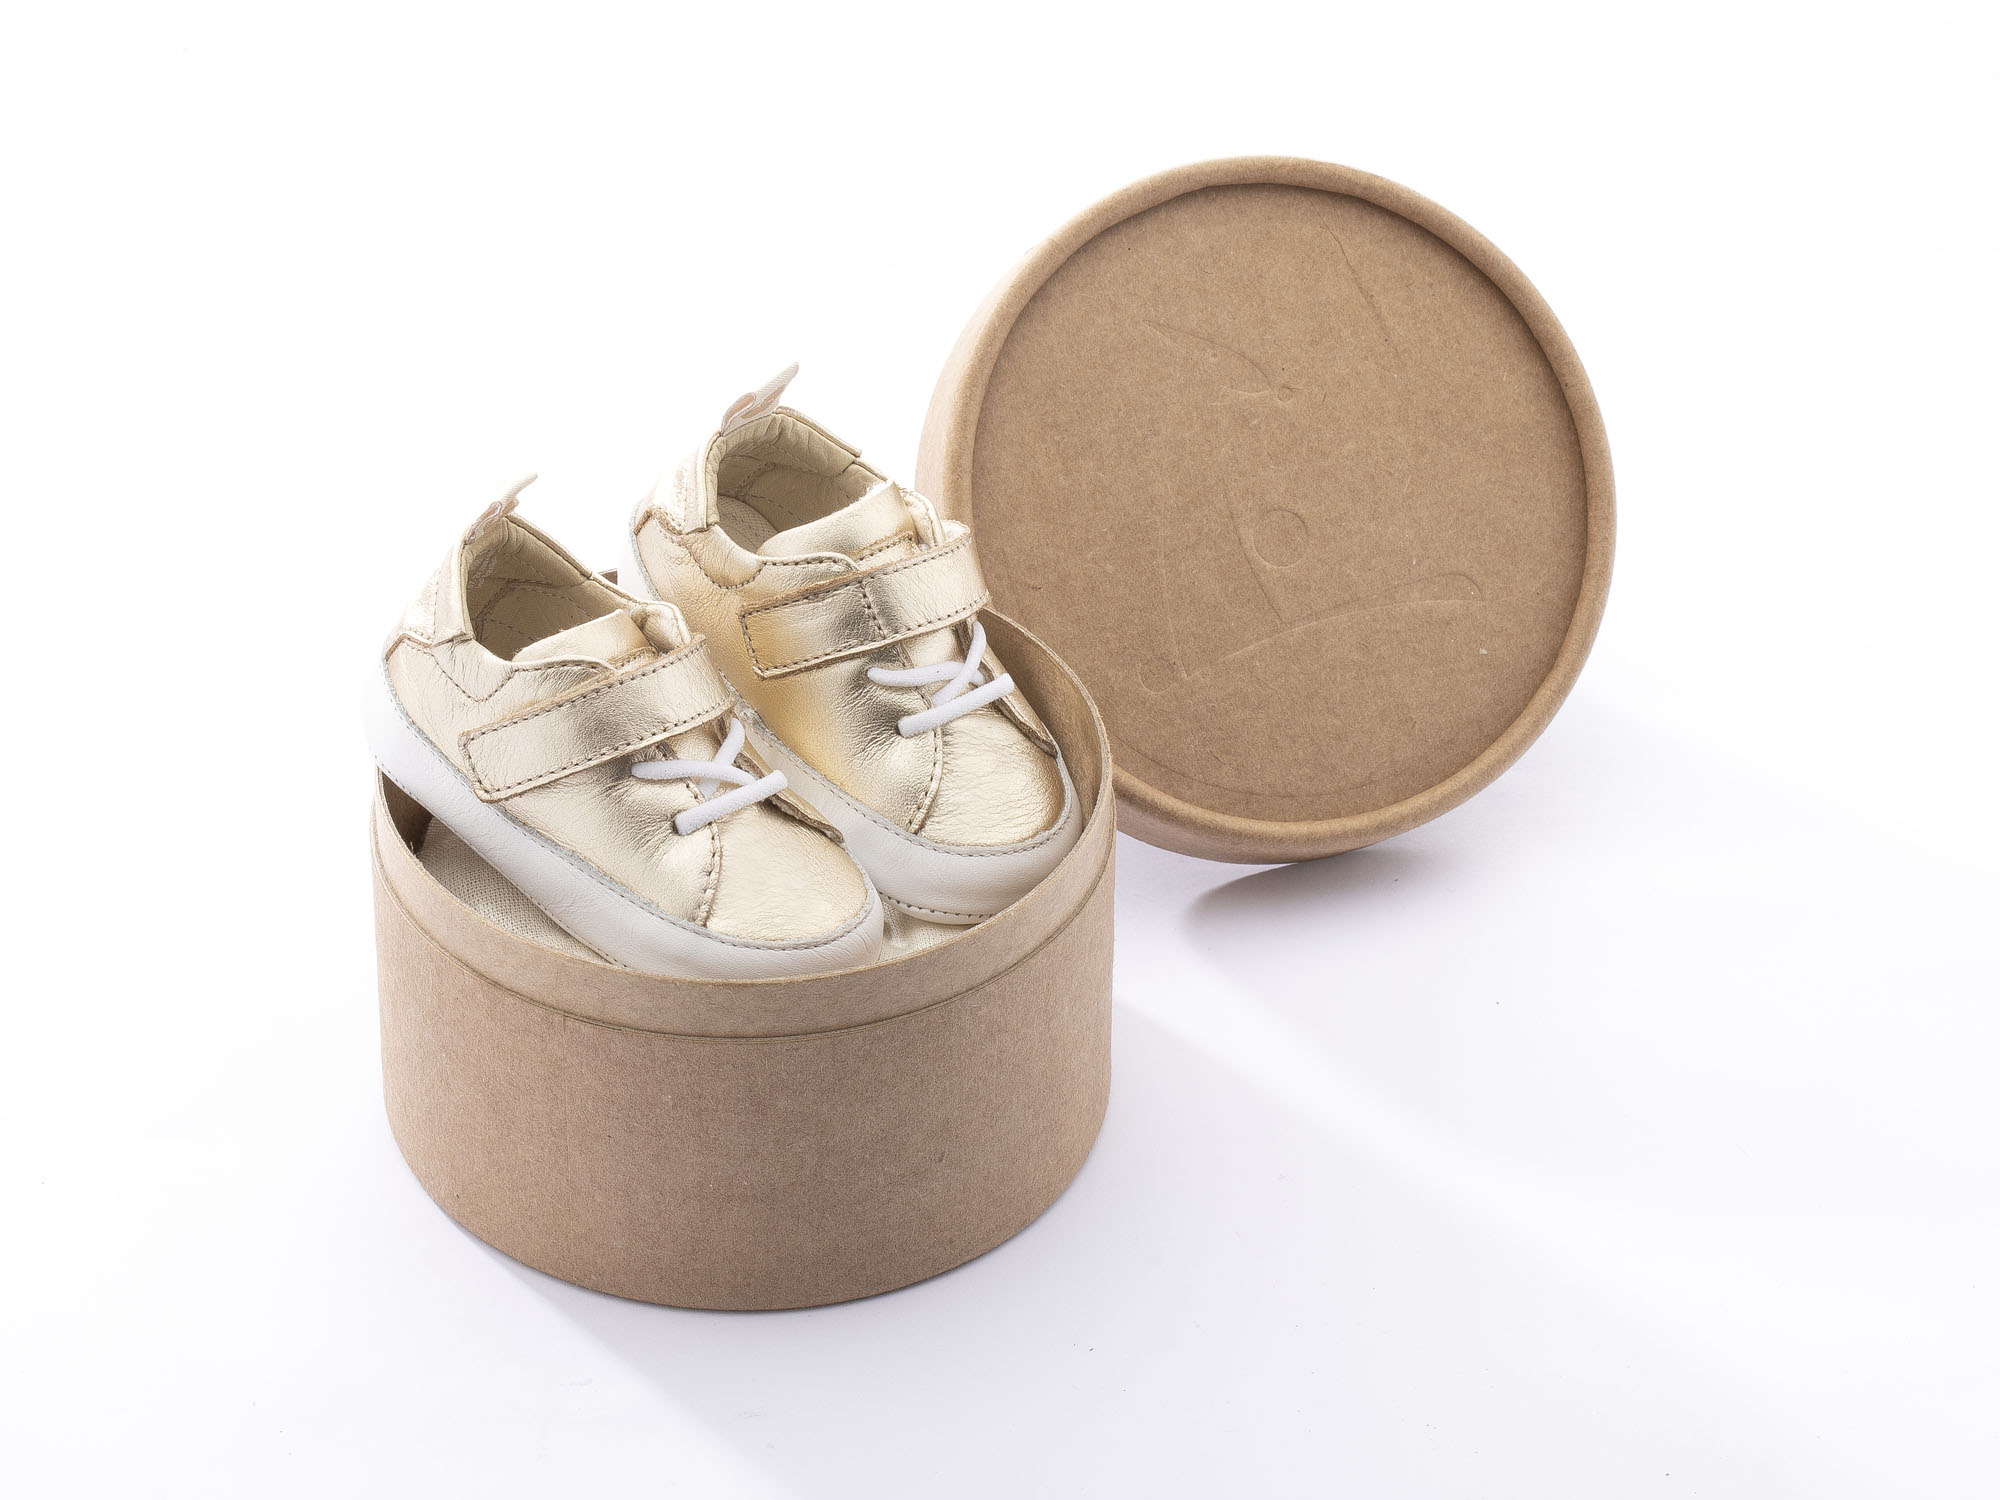 Sneaker Casual Light Champagne  Baby 0 à 2 anos - 3